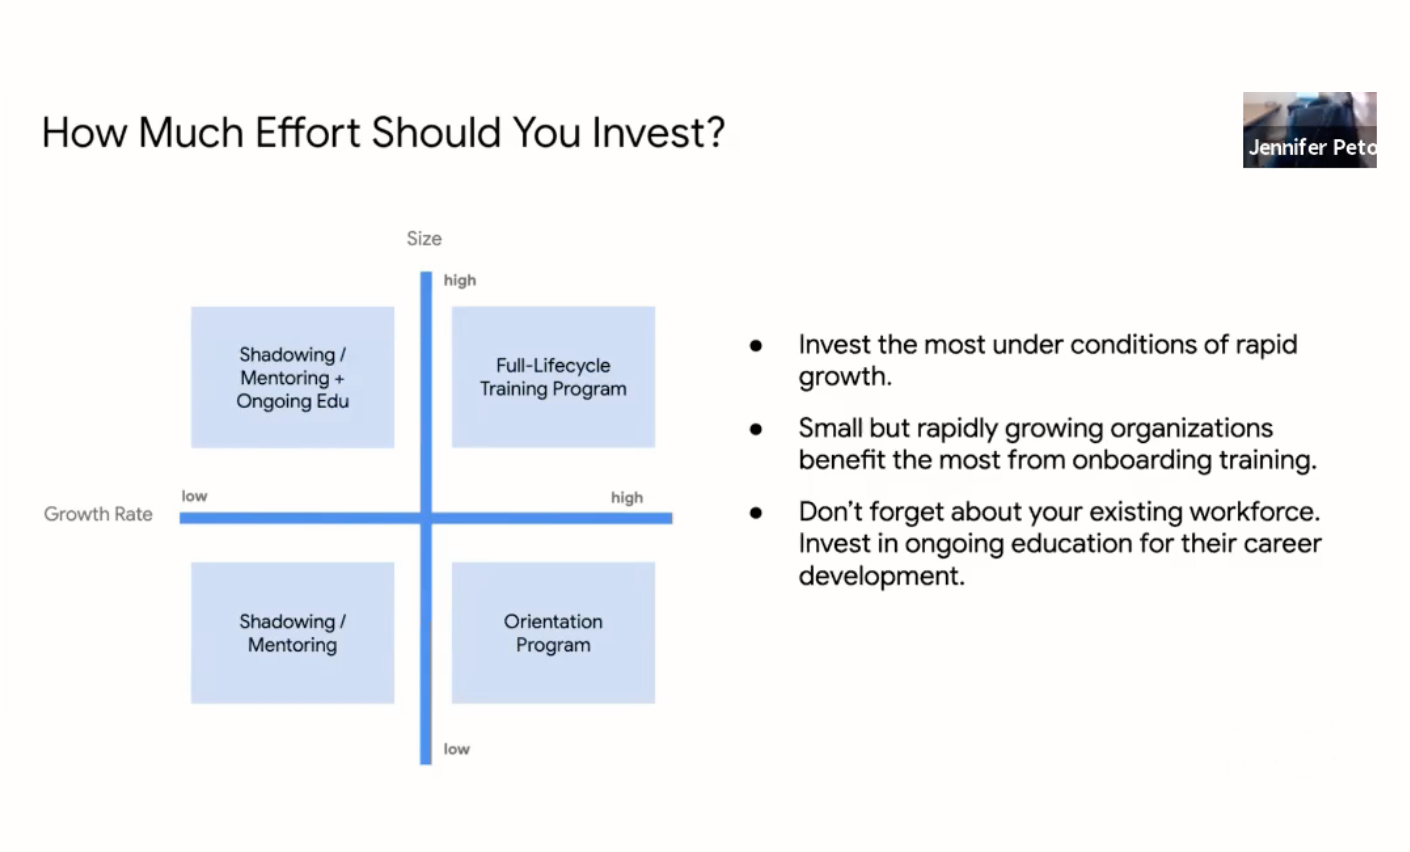 how much effort should you invest?